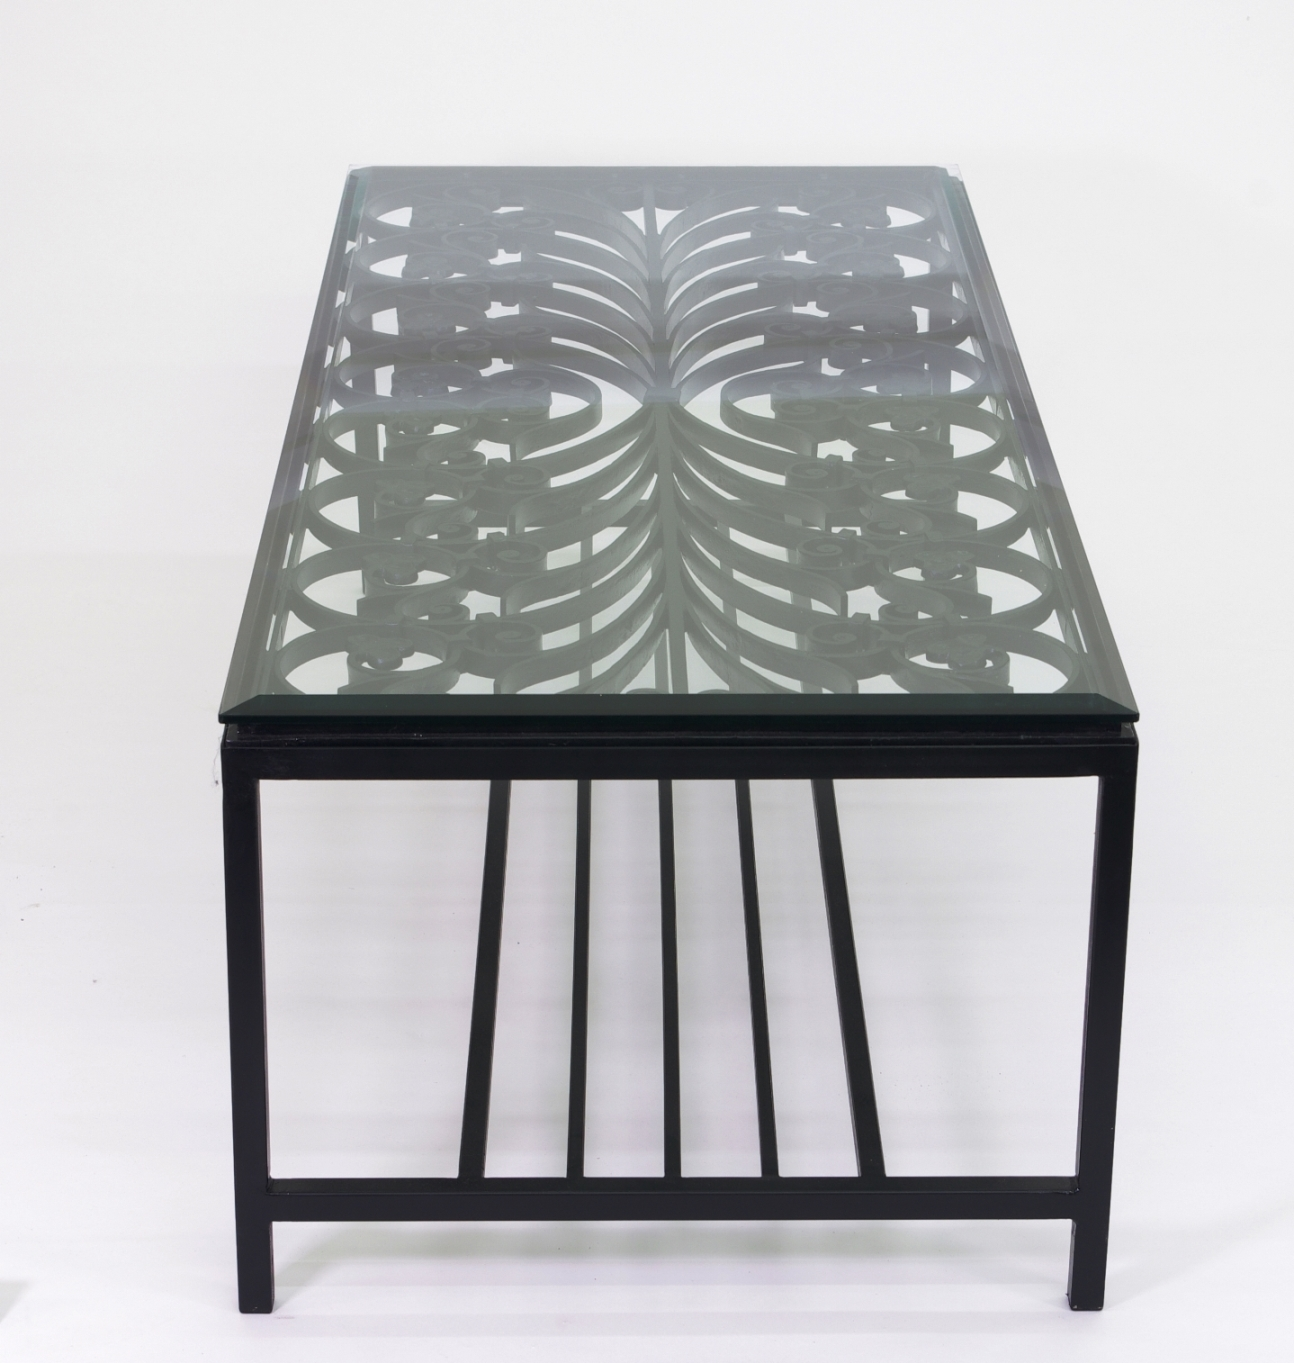 View 3: French Wrought Iron Window Guard Mounted as a Coffee Table, Mid 19th c.